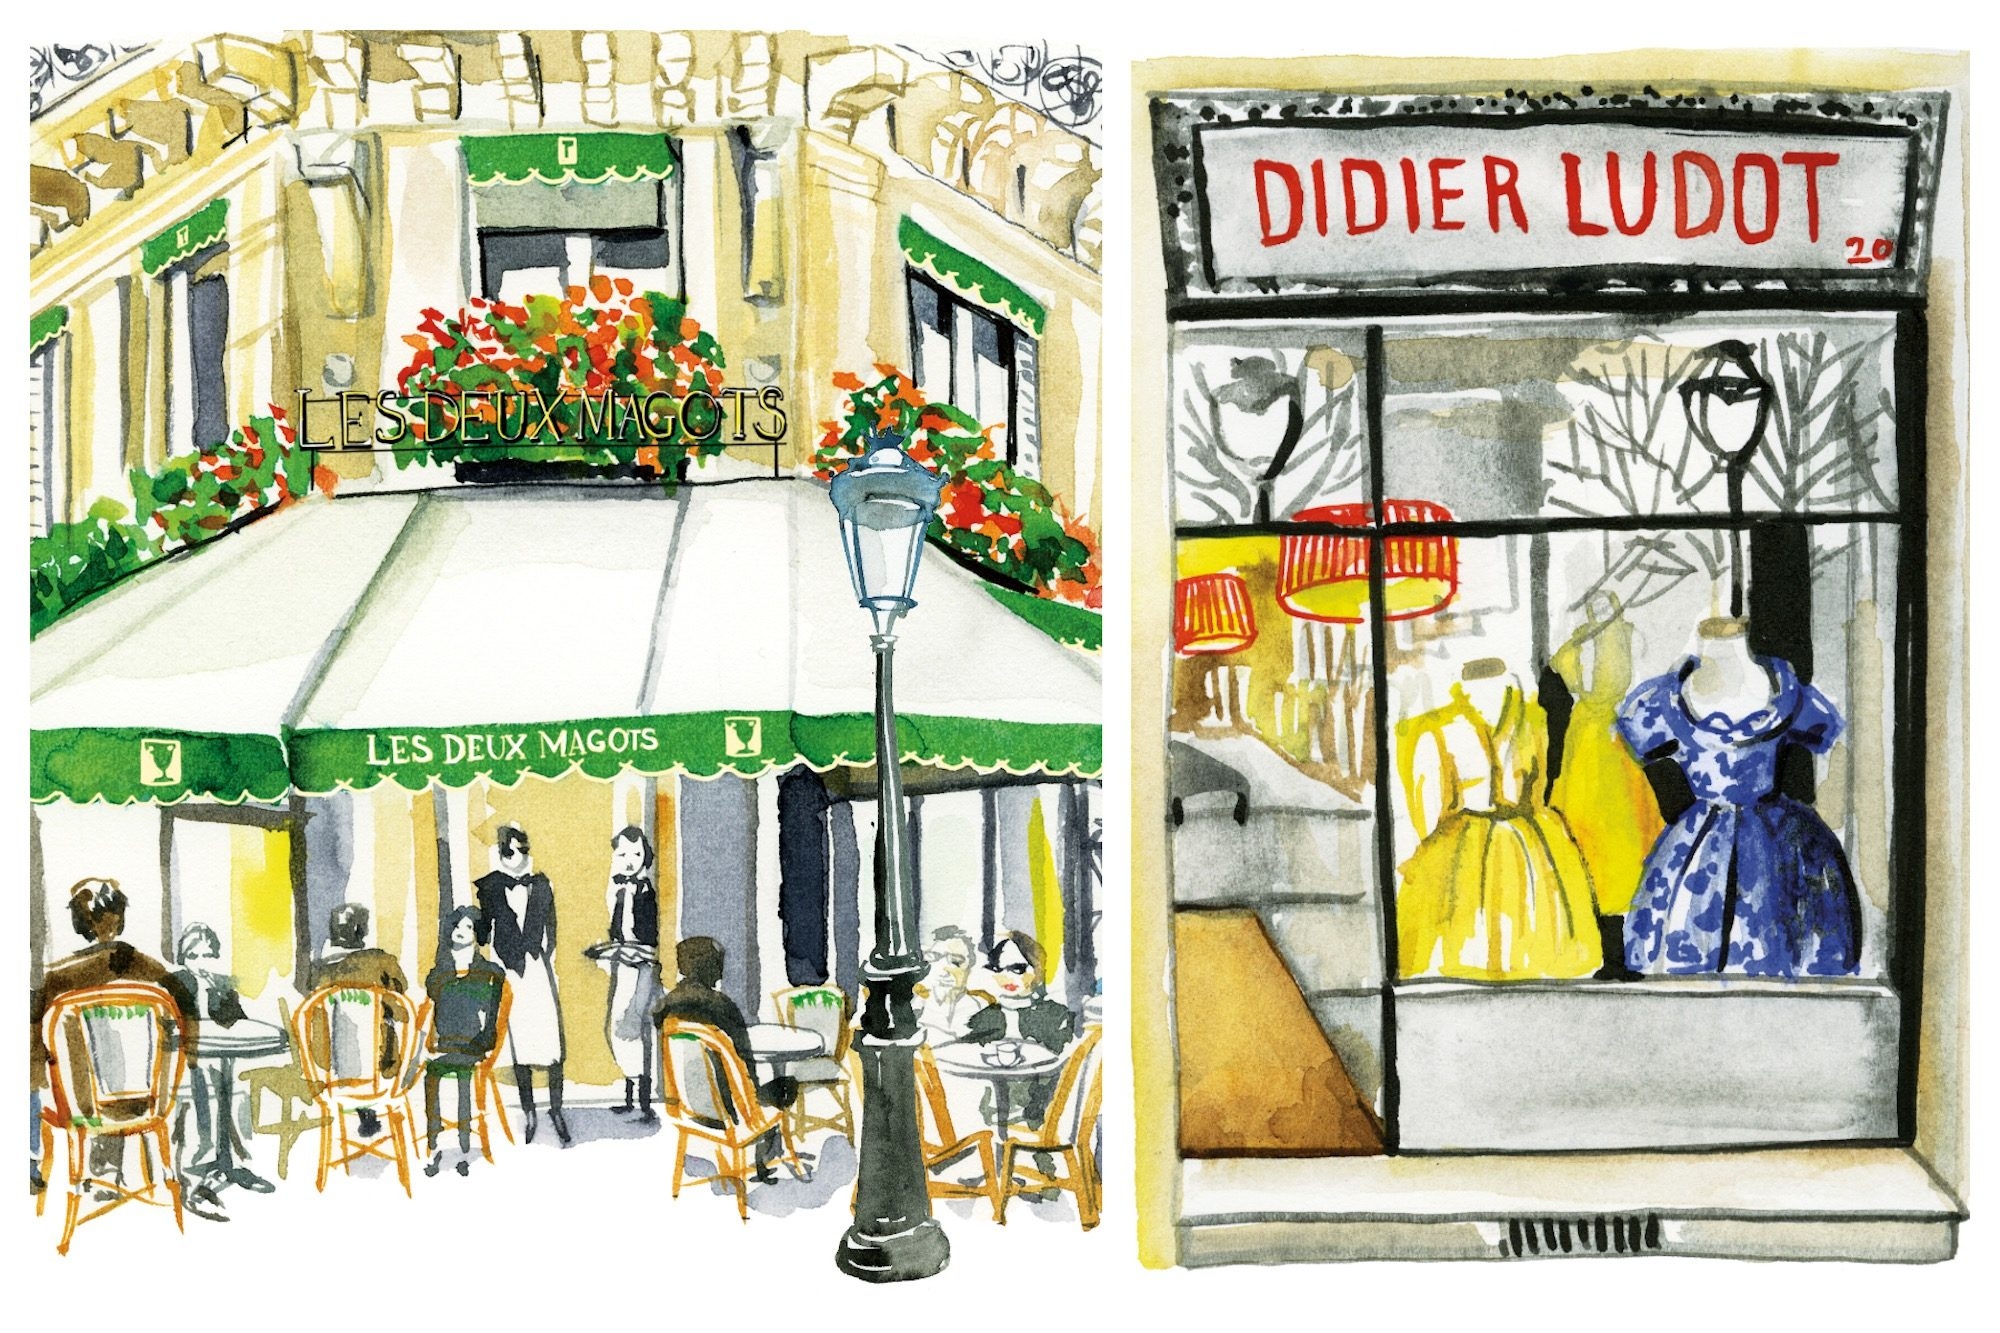 Jessie Kanelos Weiner's watercolor illustrations in the guidebook 'Paris in Stride' include the famous Café des Deux Magots in Saint Germain (left) and Didier Ludot's chic second-hand Paris vintage apparel store in the Jardins du Palais Royal (right).